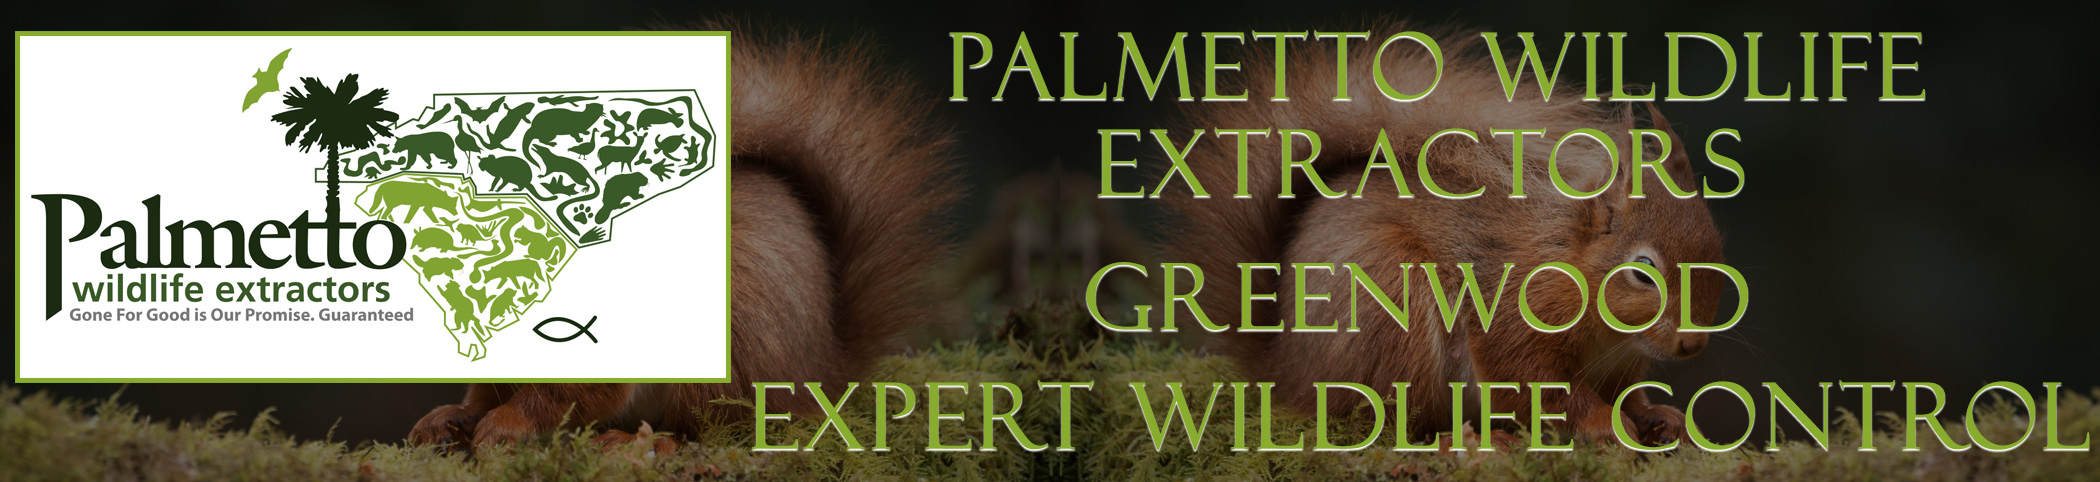 Palmetto Wildlife Extractors Greenwood South Carolina header image